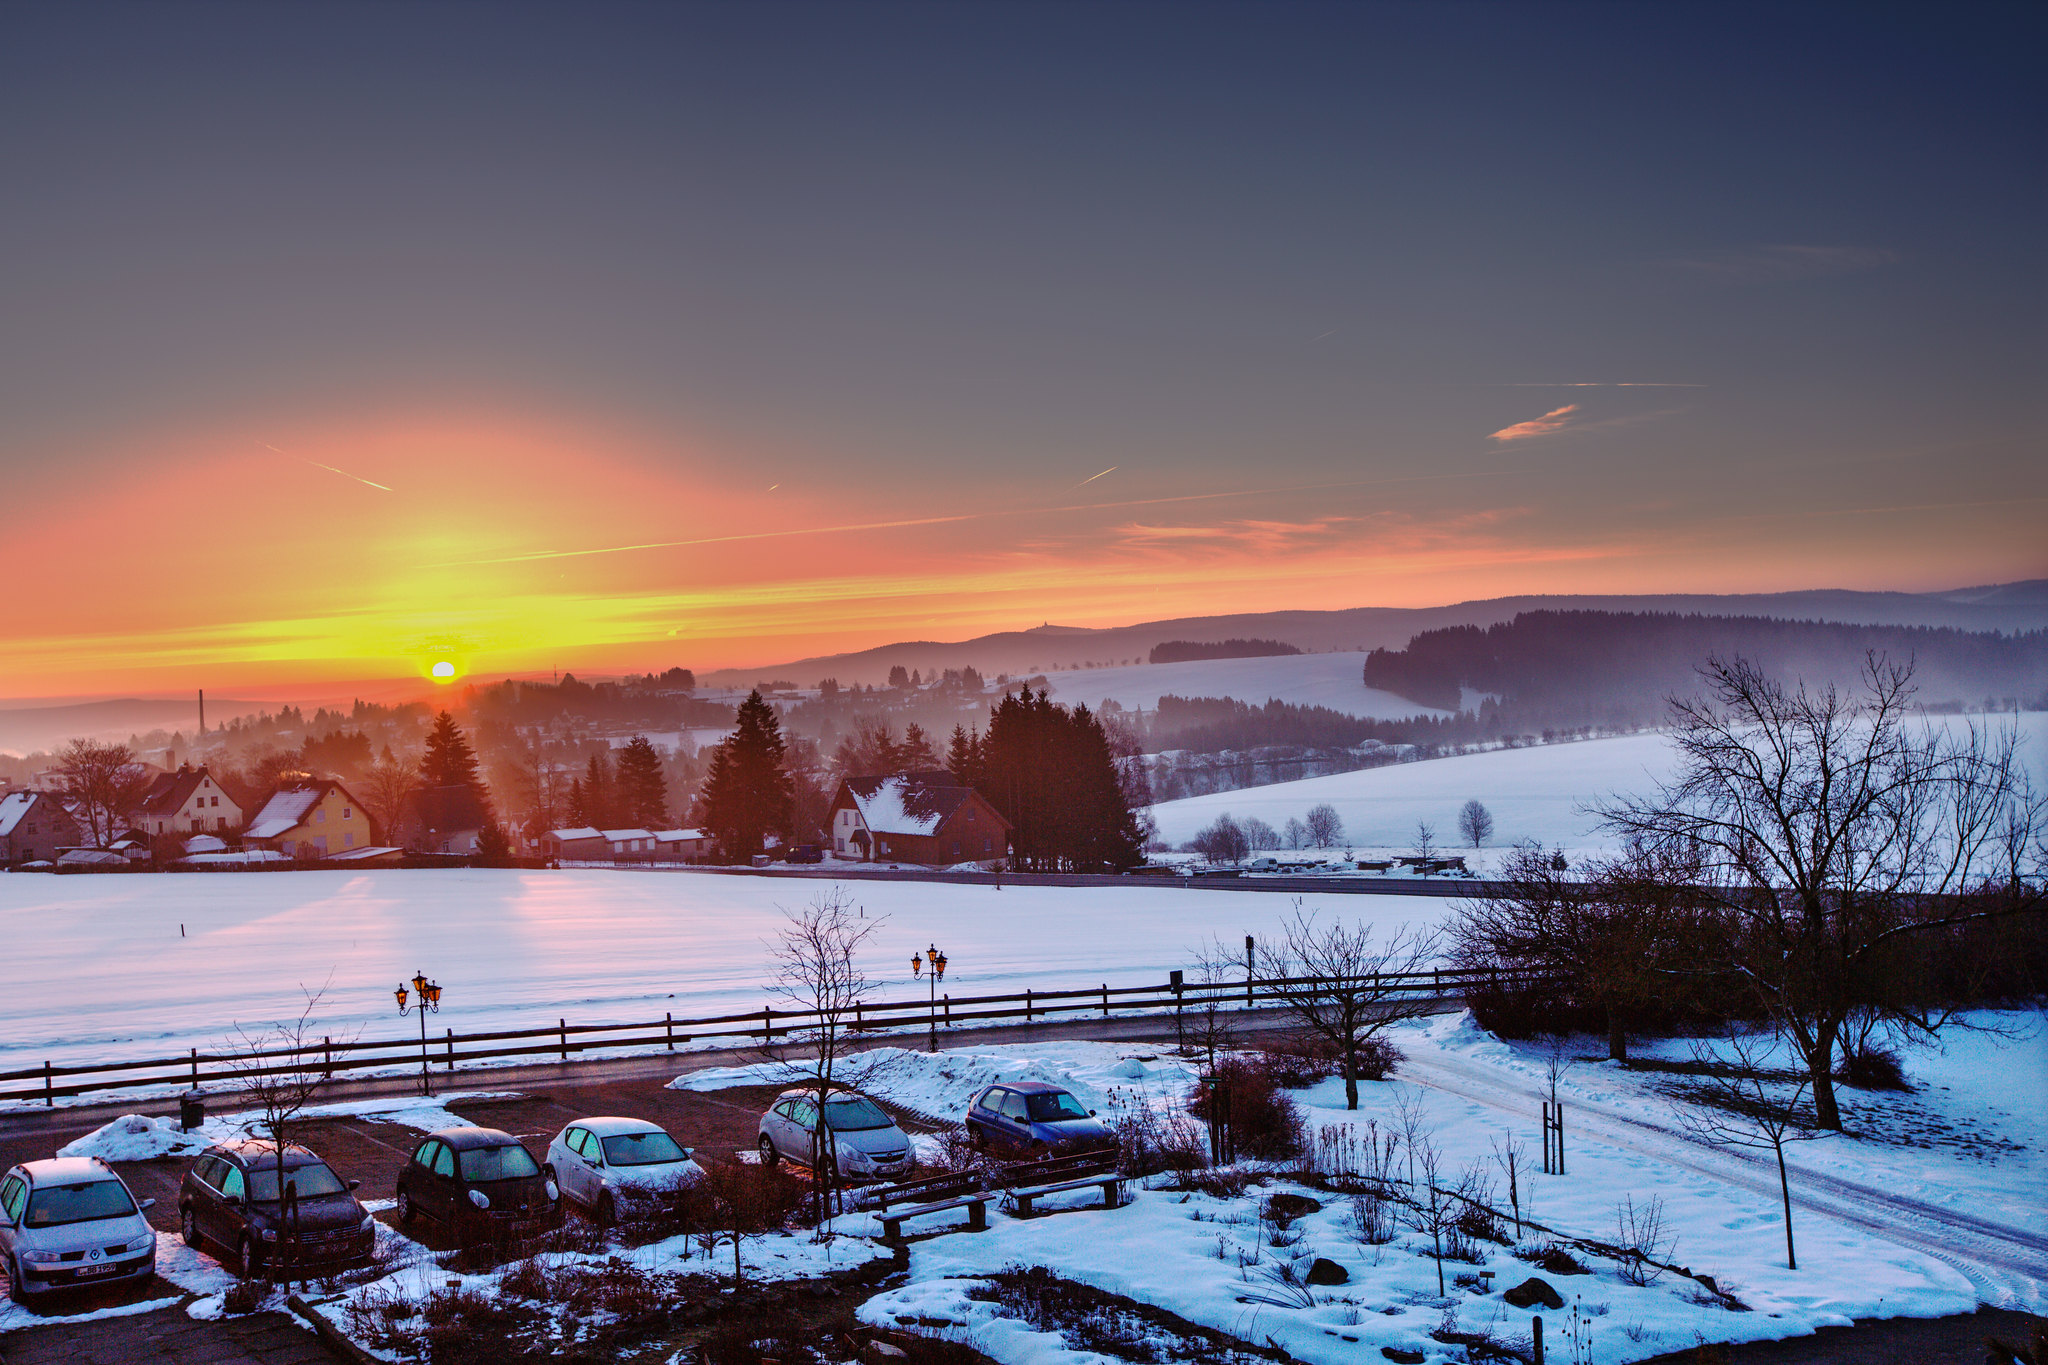 Winter sunrise | Flickr - Photo Sharing!